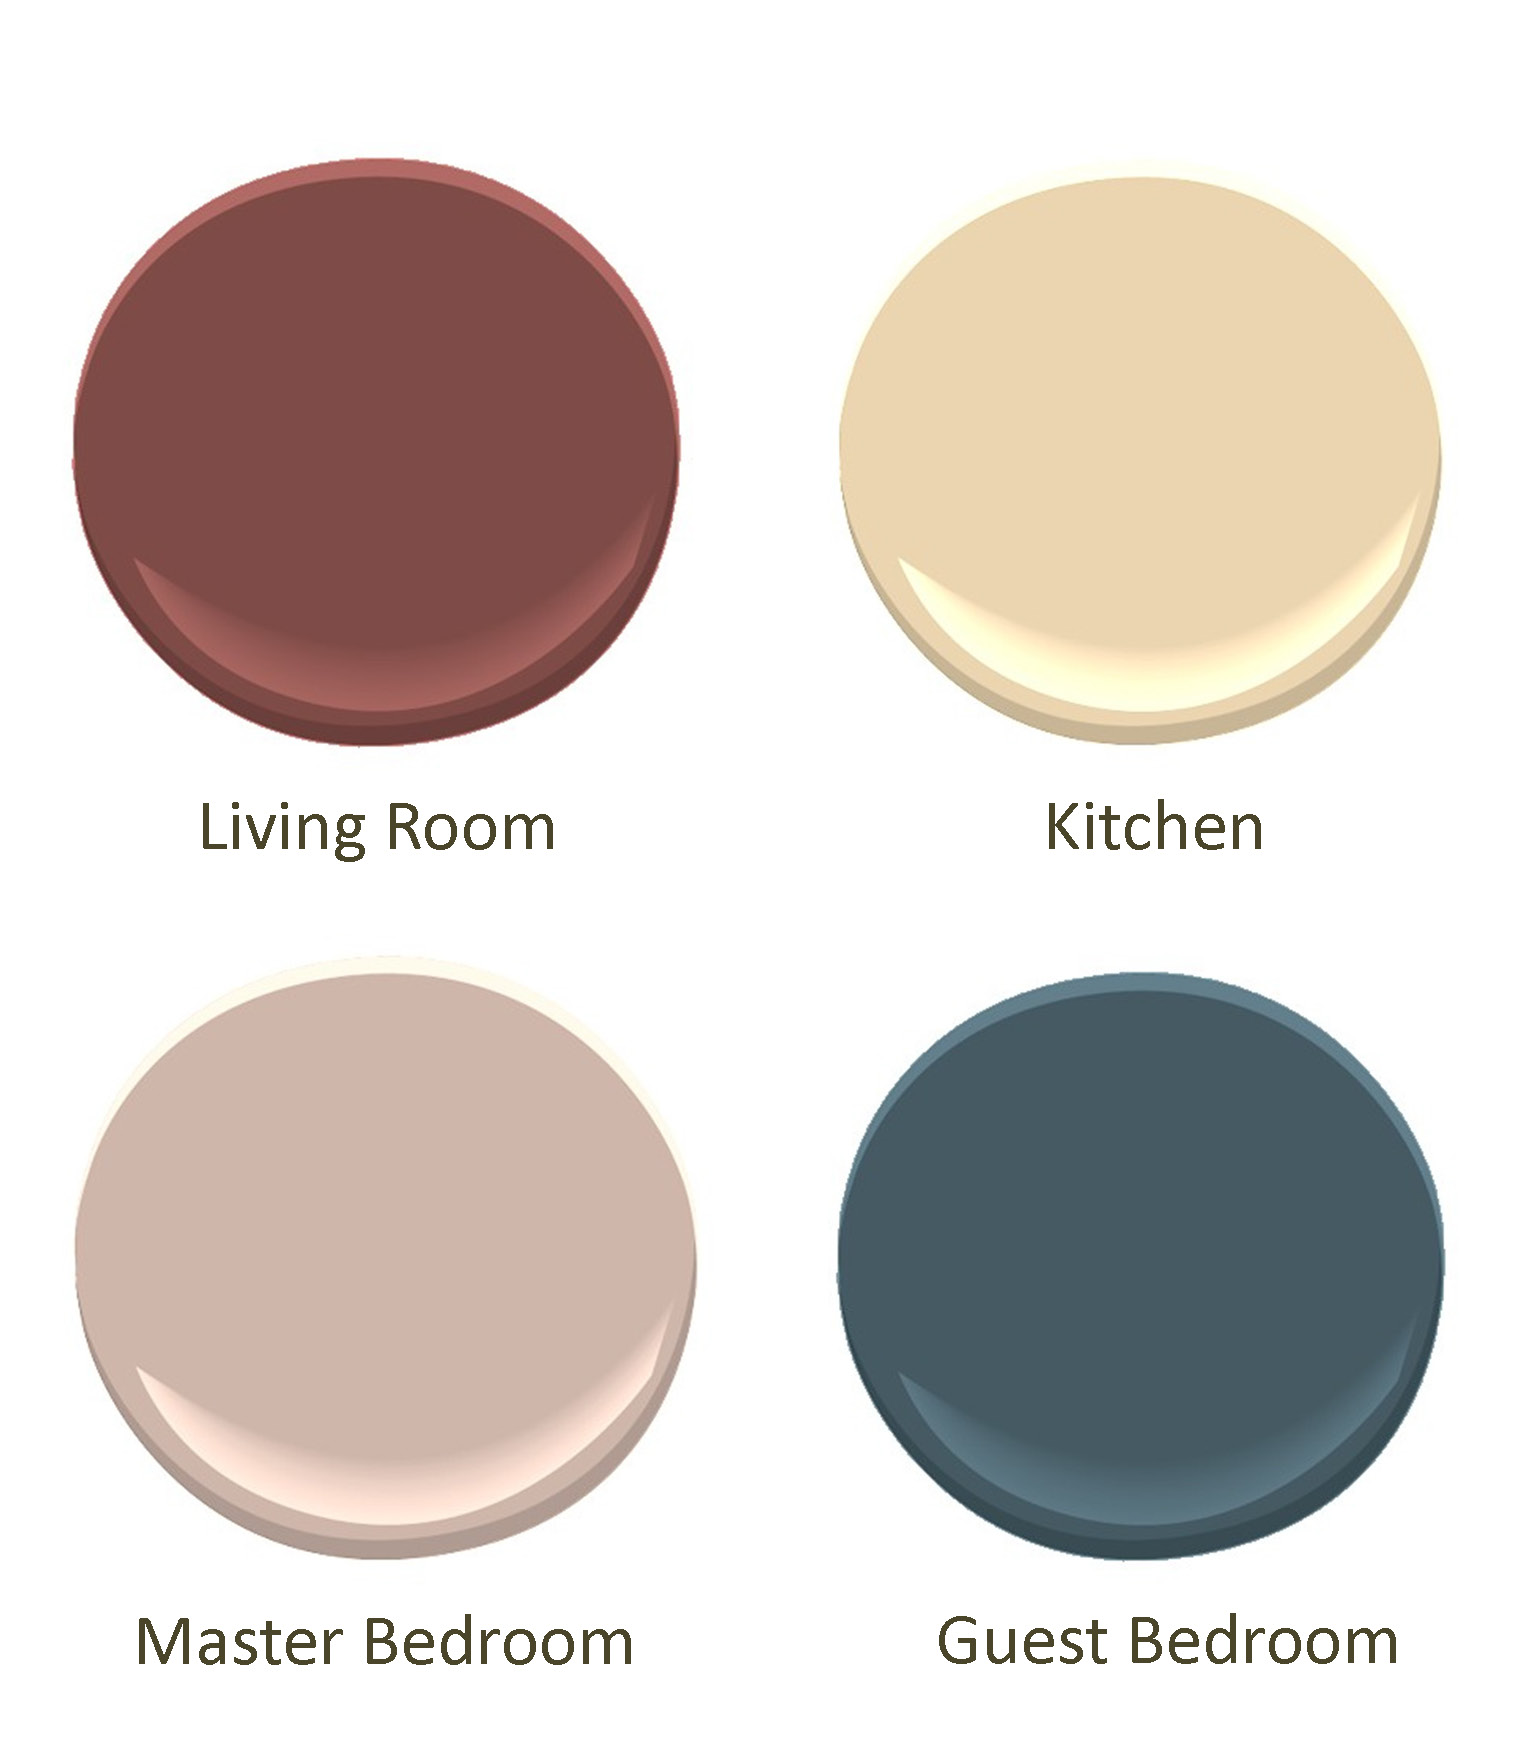 Paint salt pippa What colors go good together for a room